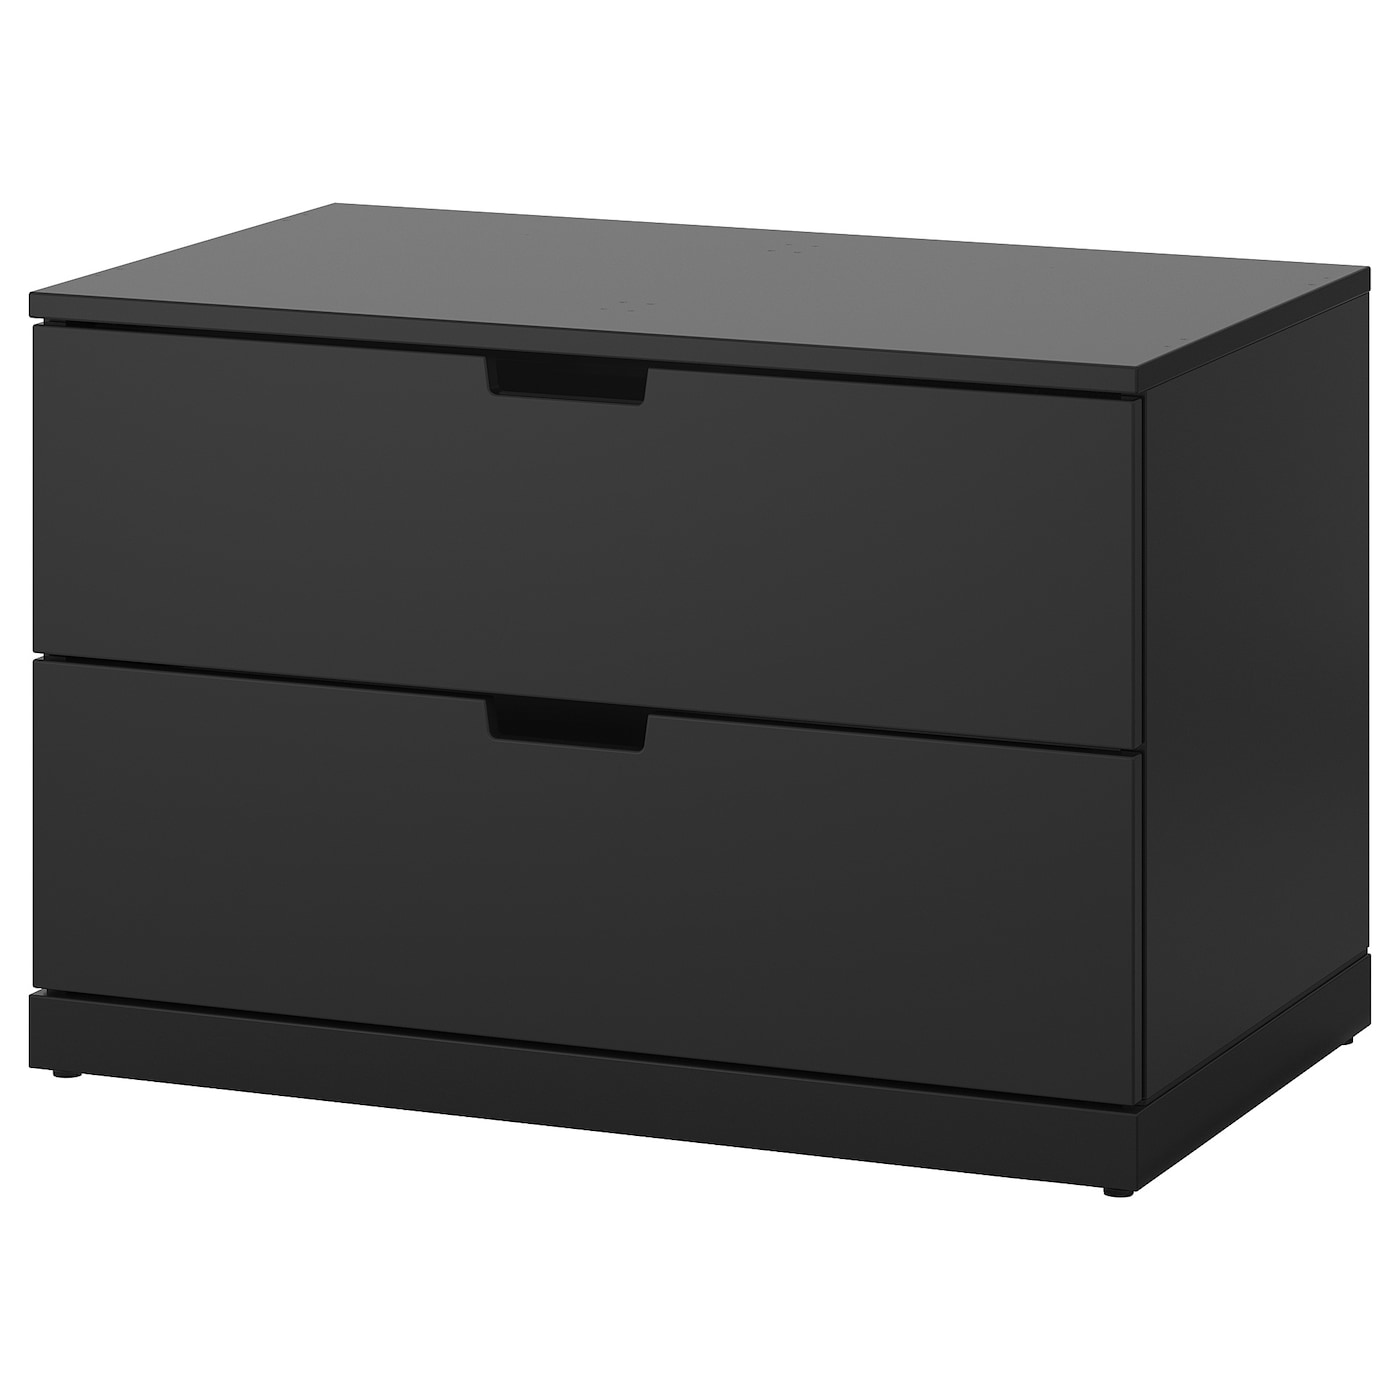 nordli commode 2 tiroirs anthracite 80x54 cm ikea. Black Bedroom Furniture Sets. Home Design Ideas